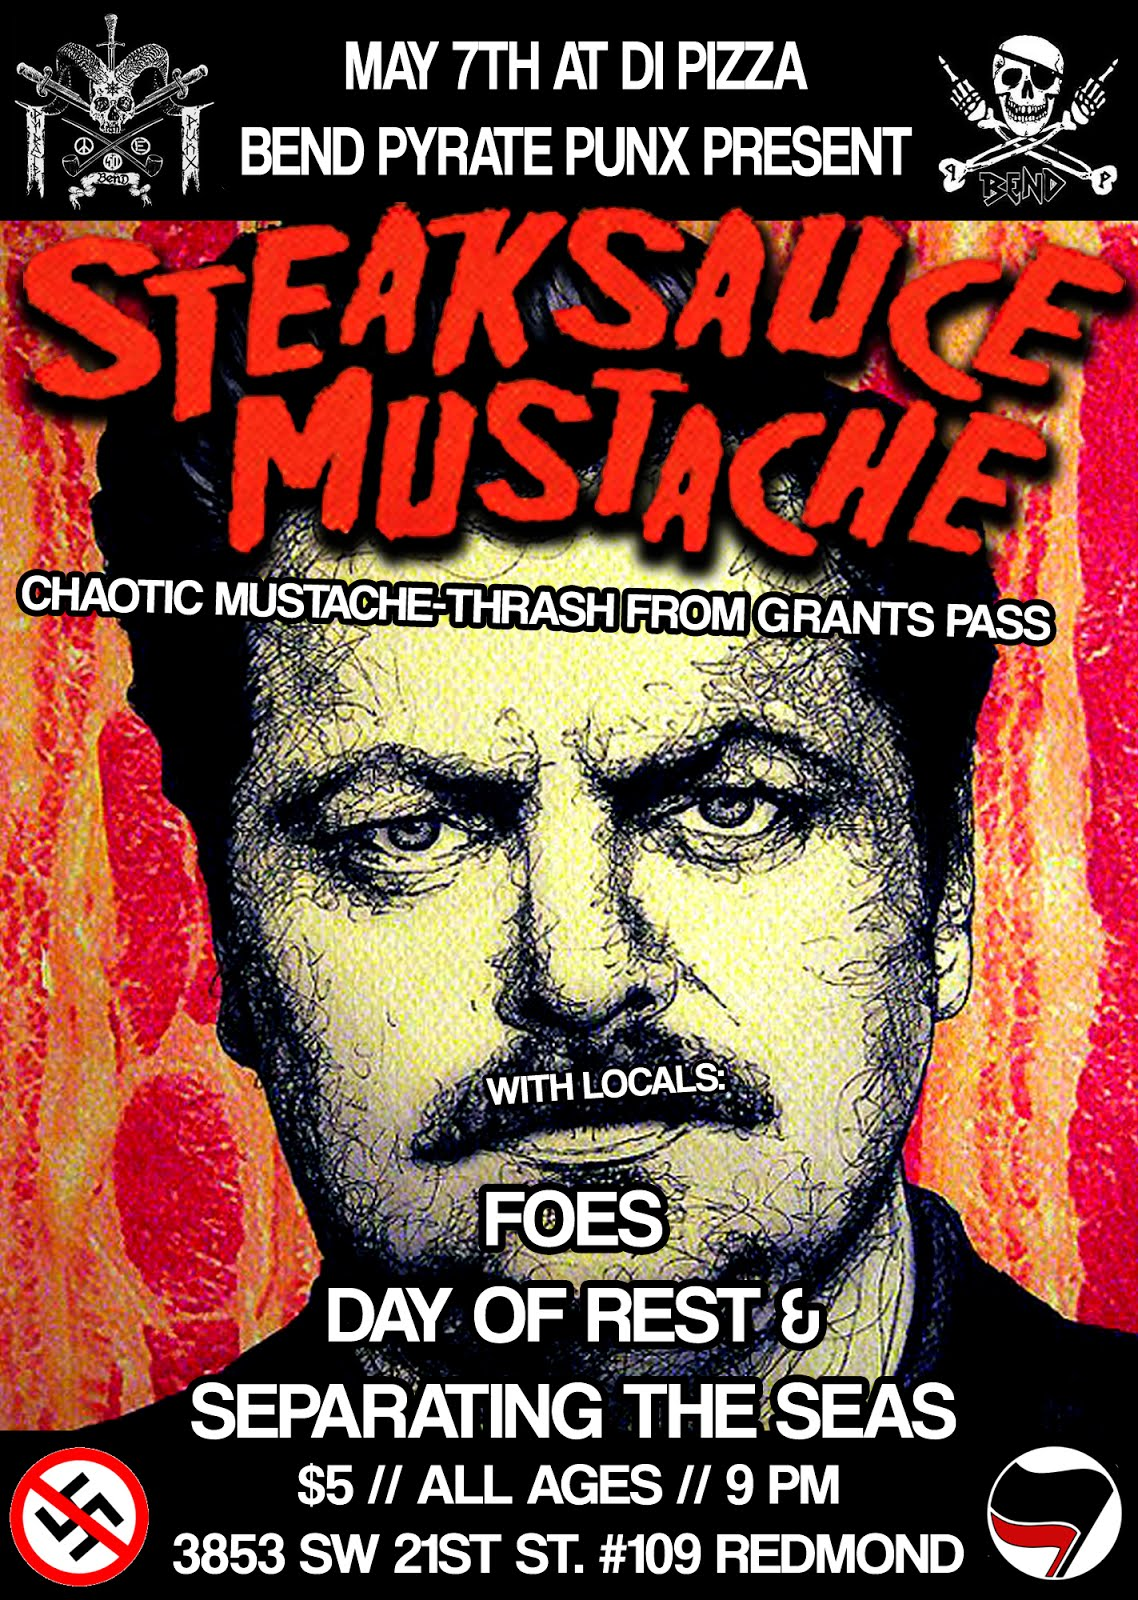 STEAKSAUCE MUSTACHE, FOES, DAY OF REST, & SEPARATING THE SEAS